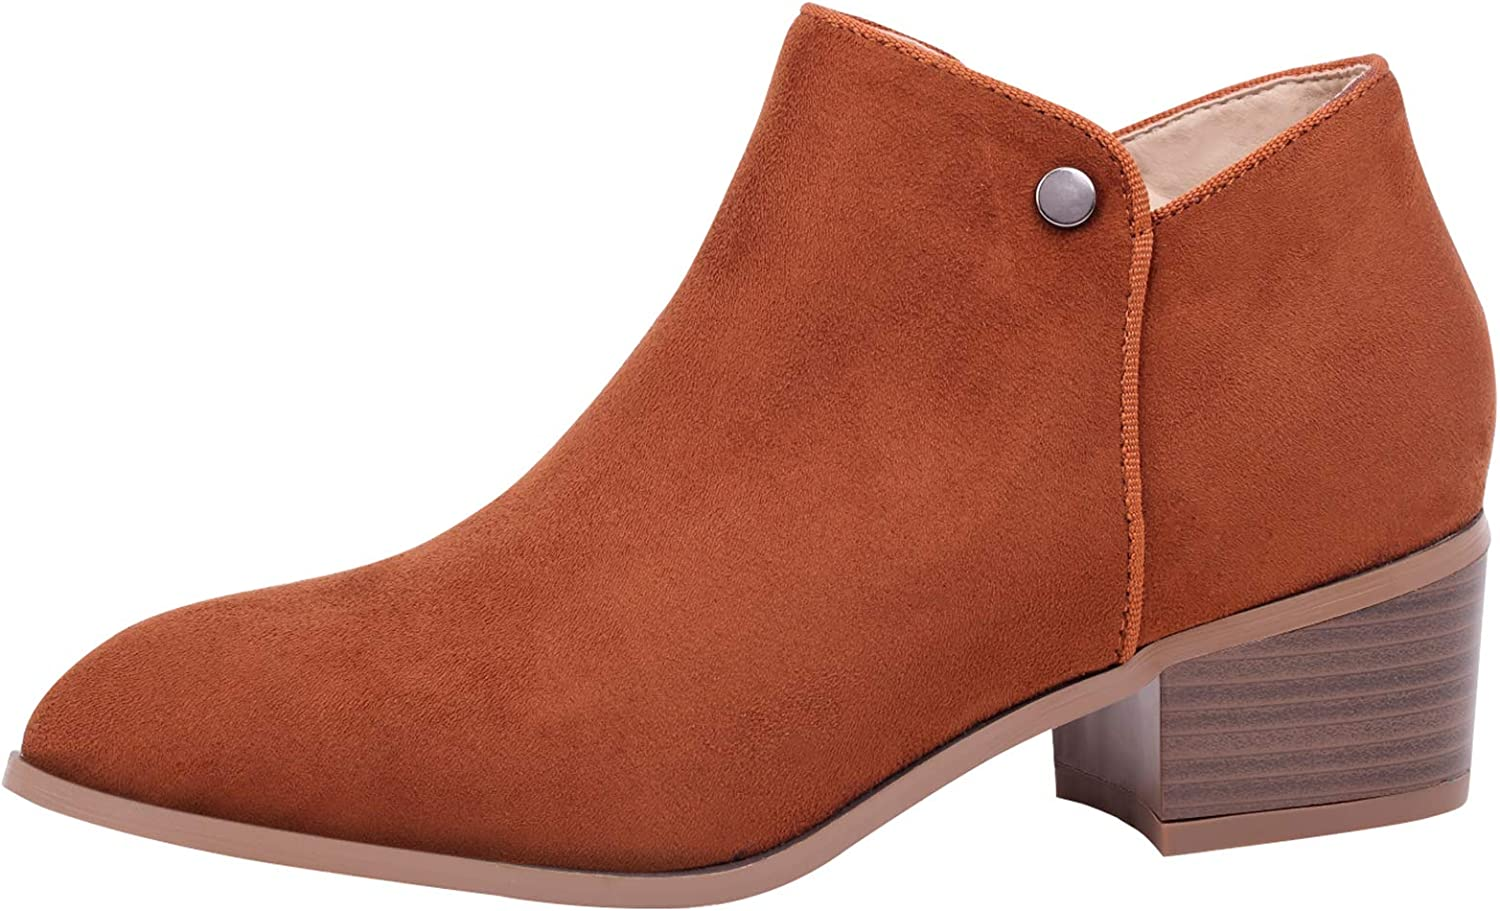 Sofree Women's Western Casual Low Heel Ankle Boots